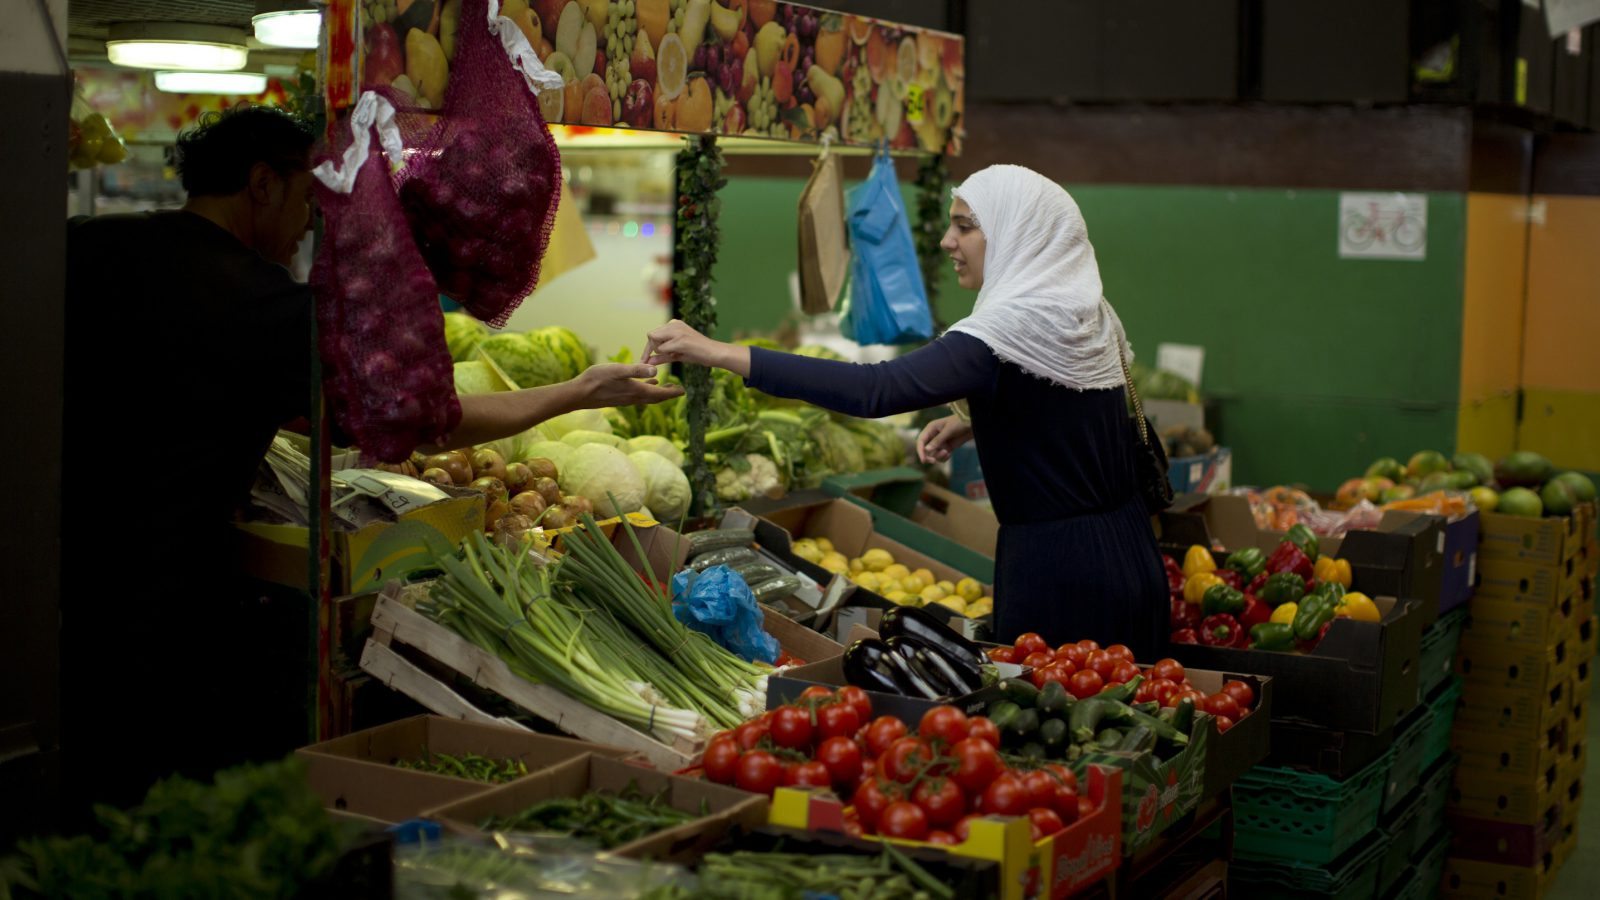 In this Tuesday, July 5, 2016 photo, a woman buys vegetables at a market in downtown Peterborough, East of England. An hour by train from London, Peterborough has experienced a rapid demographic shift, with the arrival of more than 30,000 migrants since the turn of the century. (AP Photo/Emilio Morenatti)